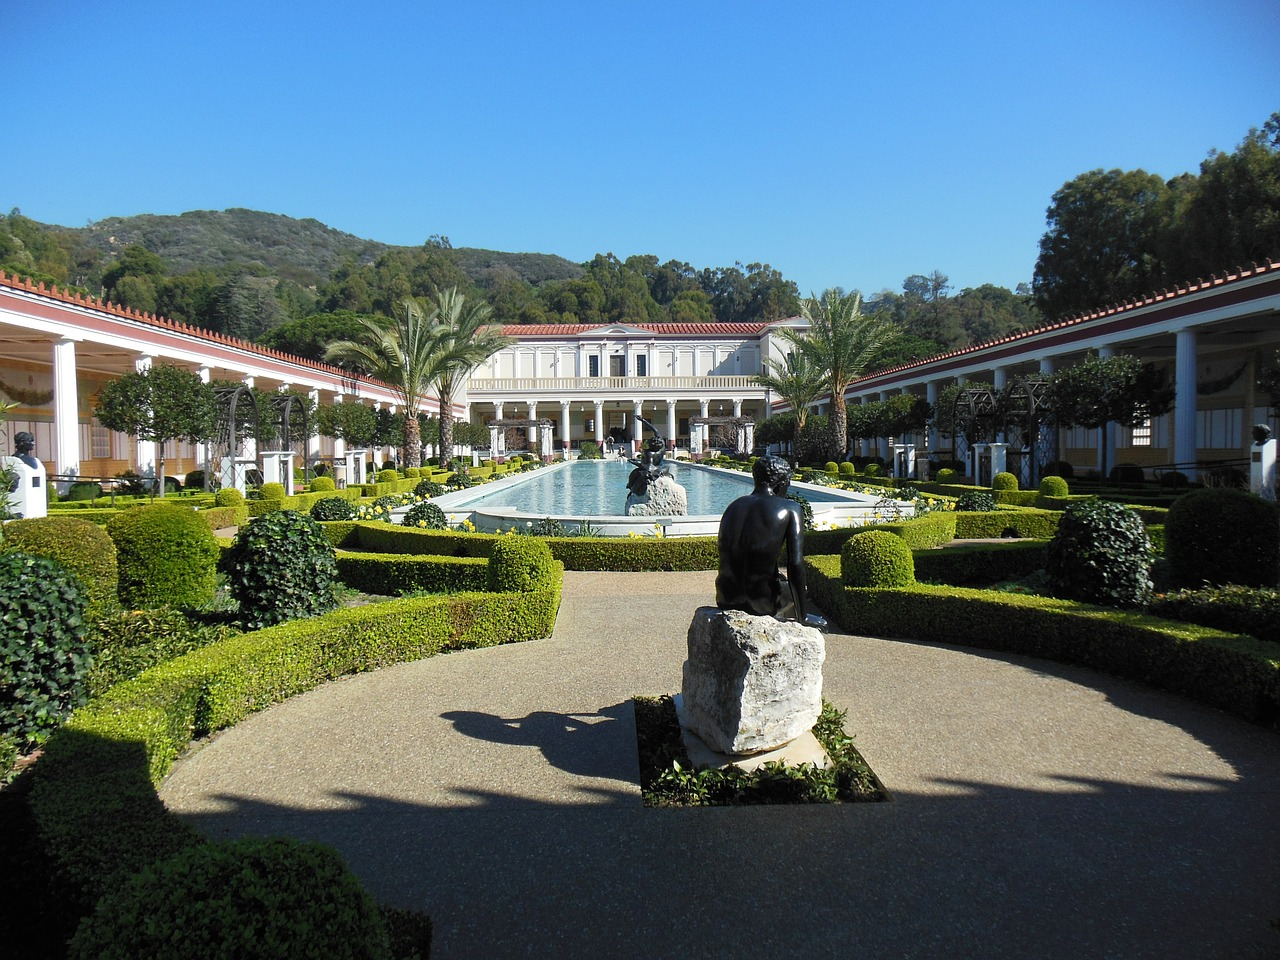 view of The Getty Villa with statues, a building and a pool